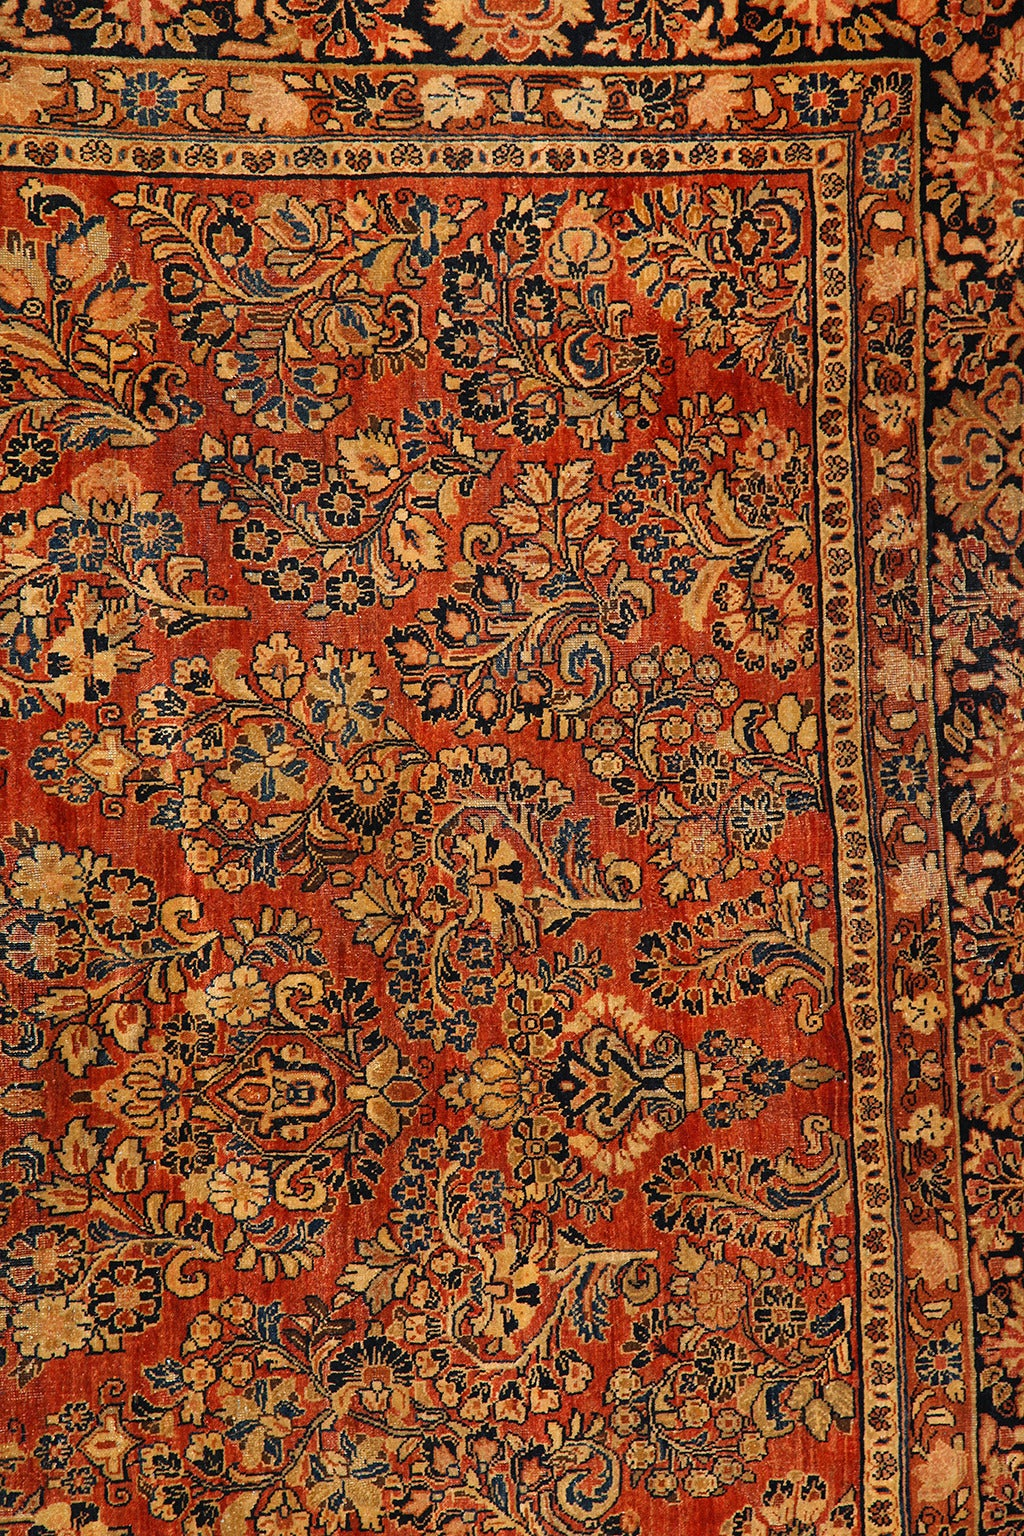 Persian Sarouk Carpet with Pure Wool Pile and Natural Vegetable Dyes, circa 1910 In Excellent Condition For Sale In New York, NY